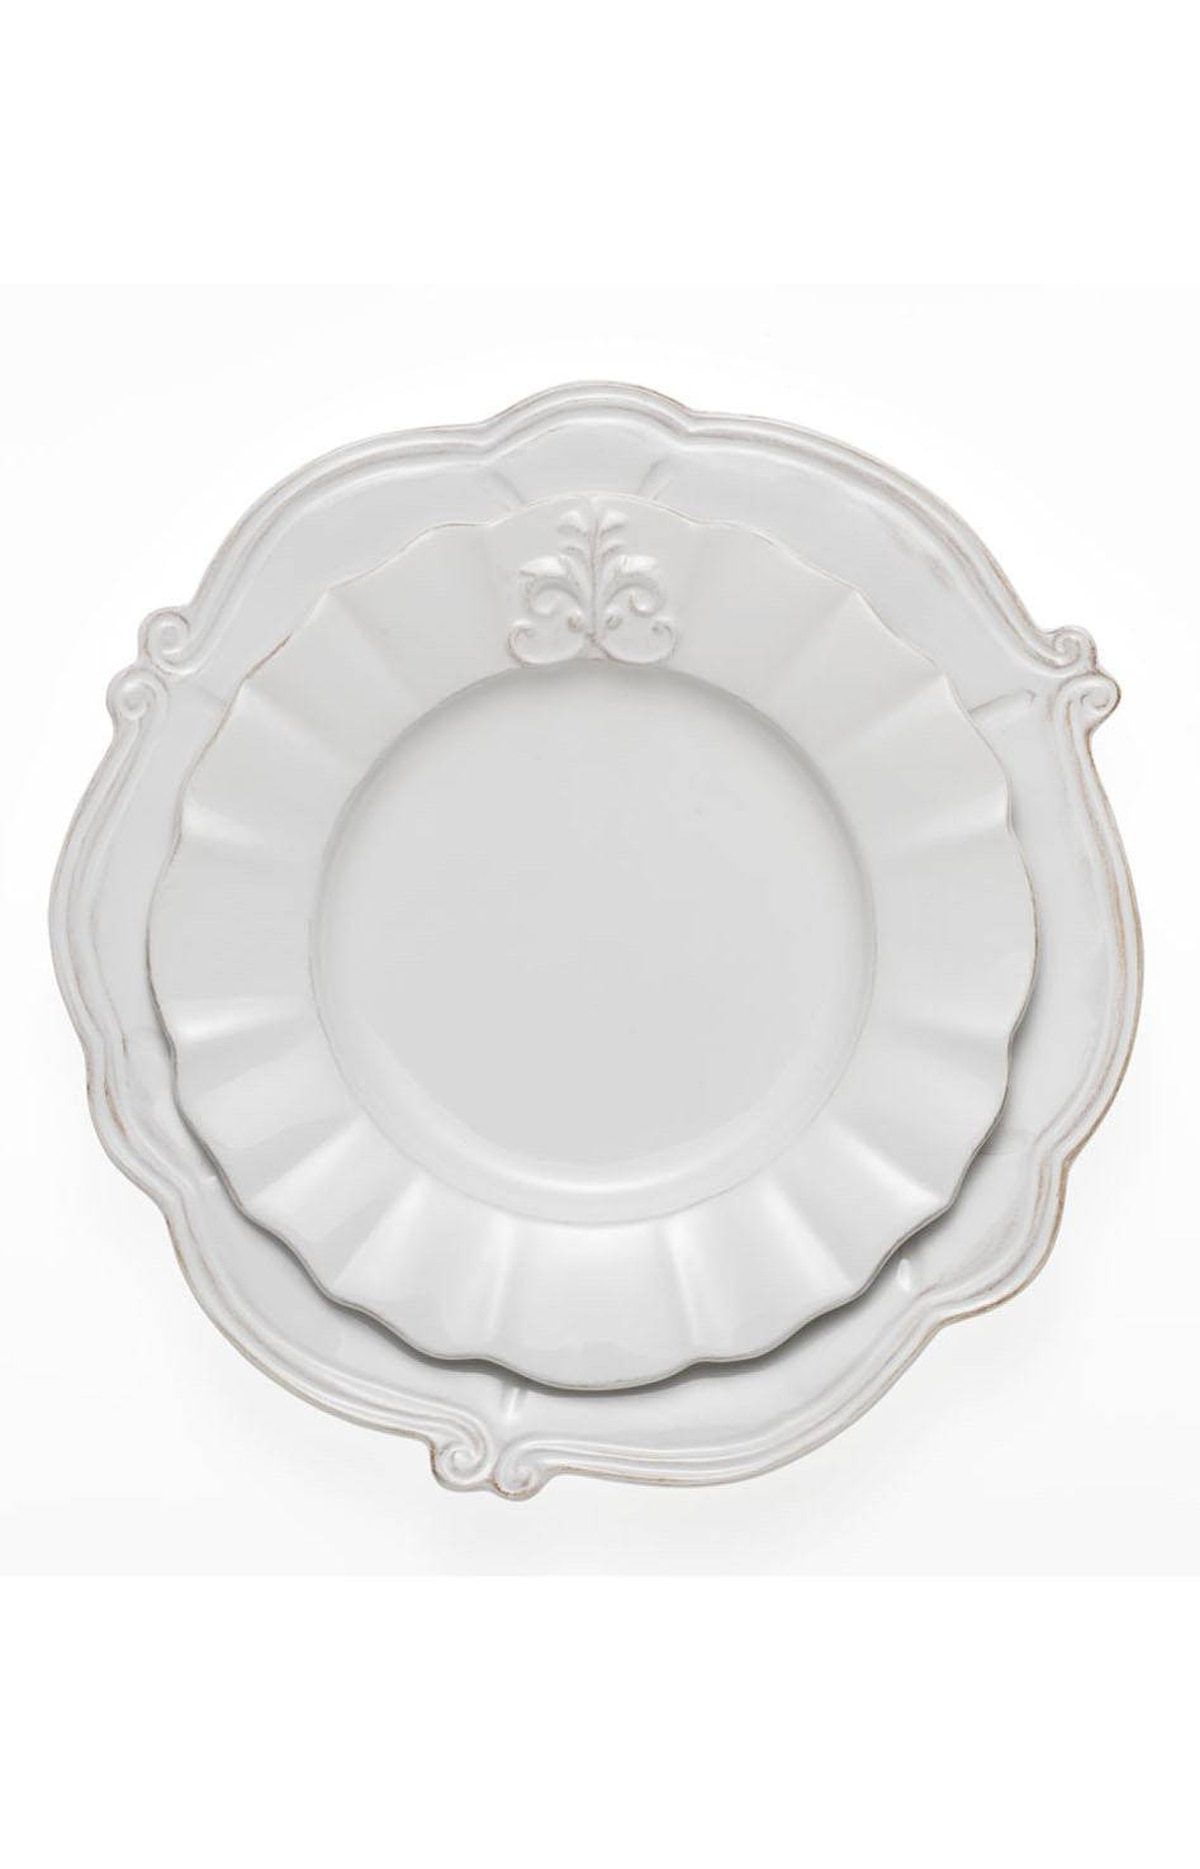 TREND: ULTRA-FEMME Porcelain plates, from $14.95 at Putti (416-972-7652).